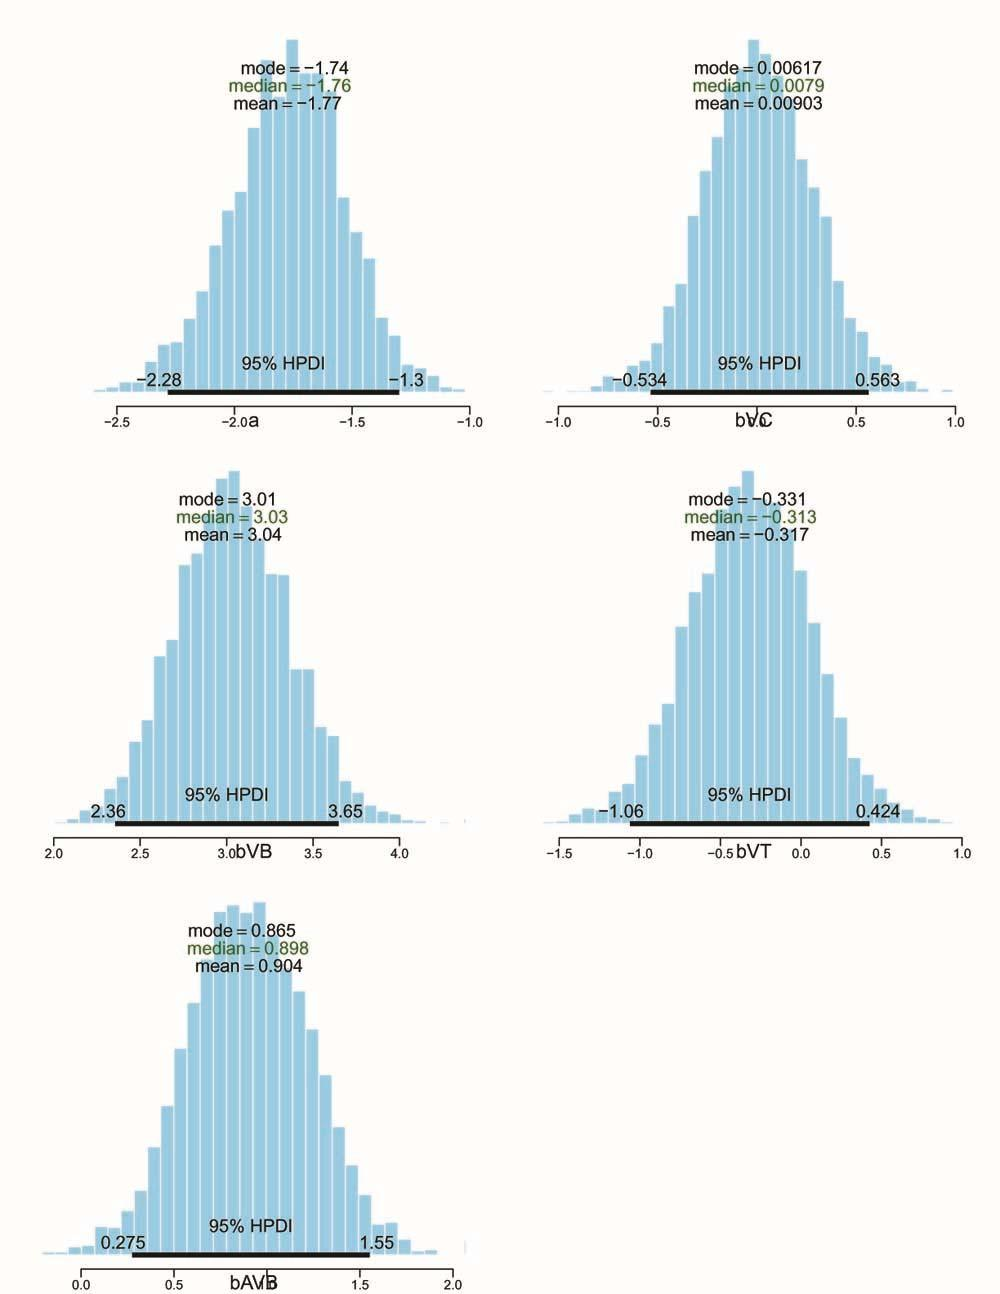 Figure 4: Posterior distributions of all coefficients from the model (mb3), the model of simple additivity for